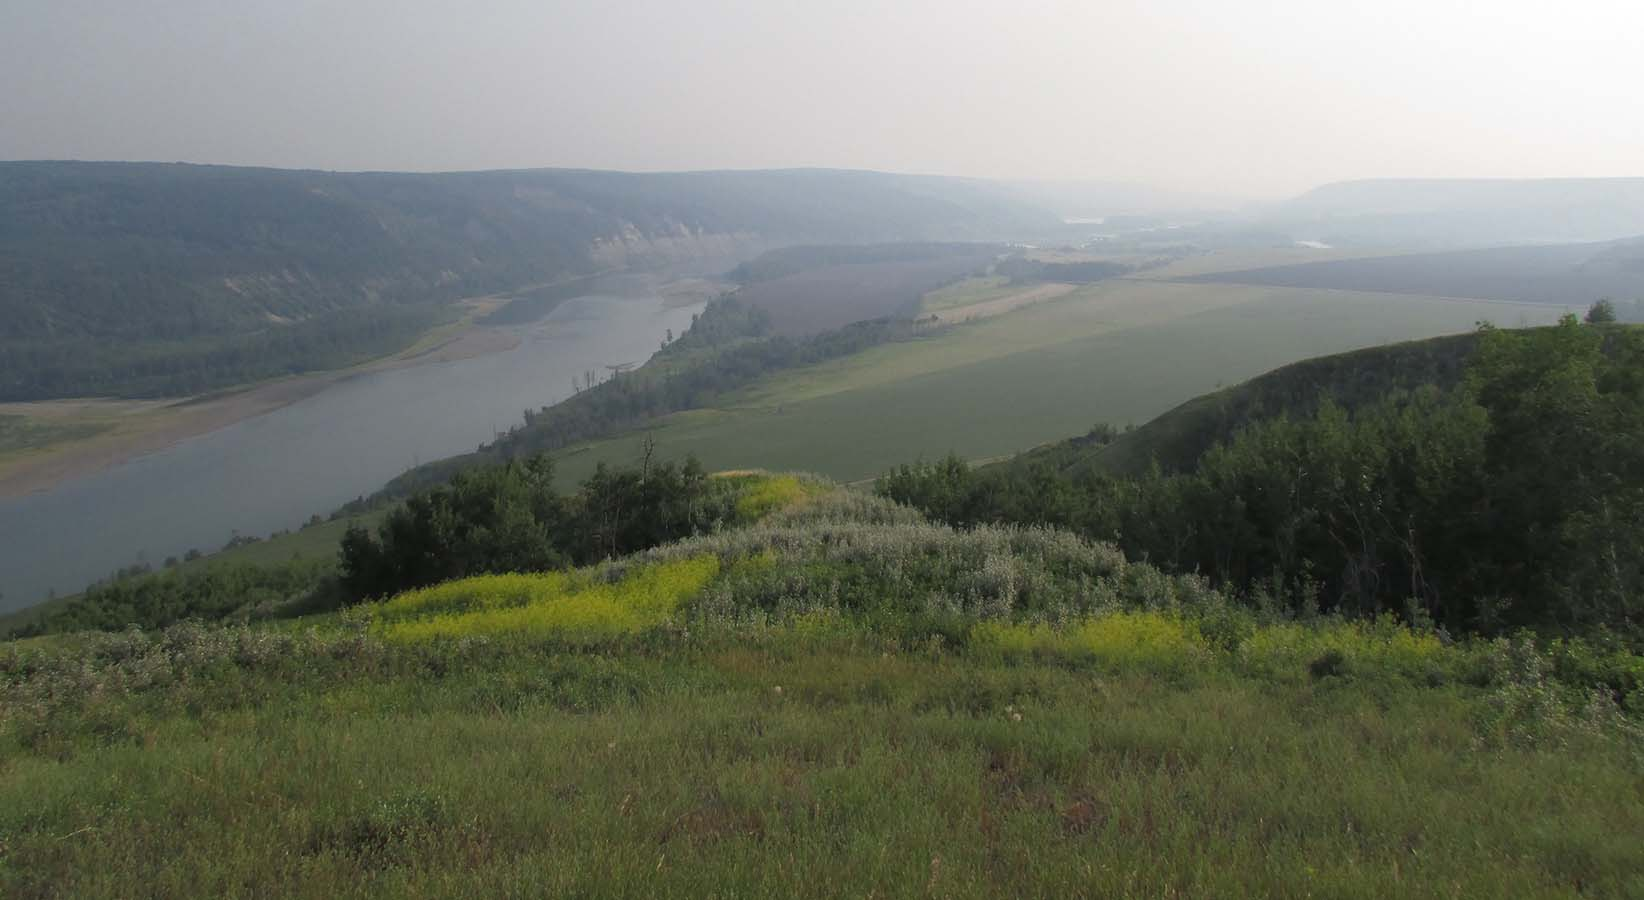 Fort St John, Peace River Valley downstream